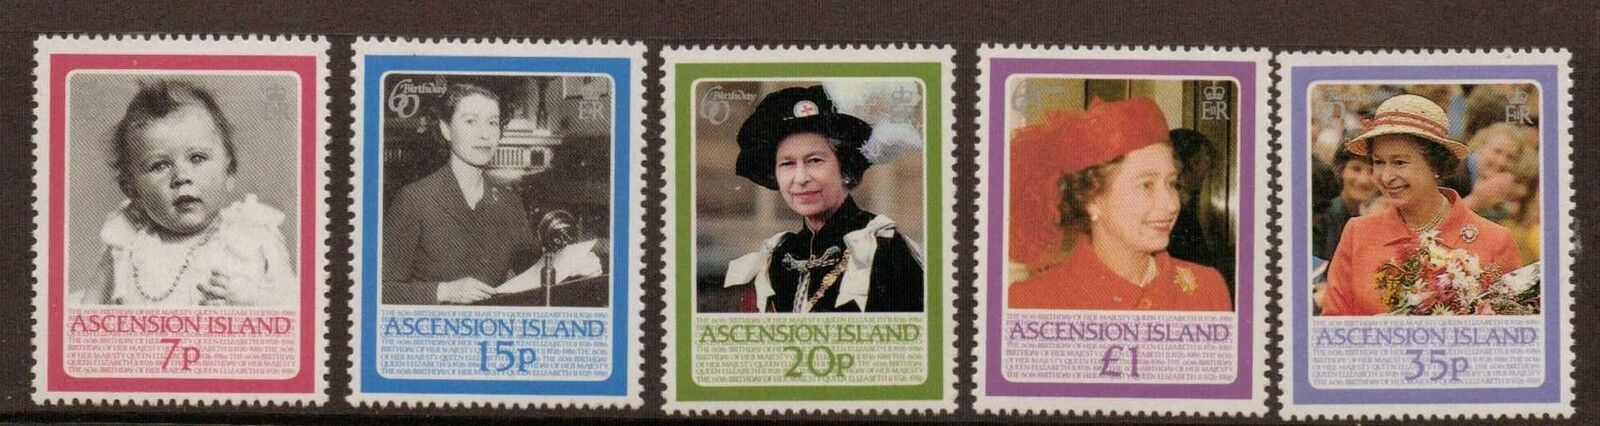 ASCENSION SG397/401 1986 60th BIRTHDAY OF THE QUEEN MNH